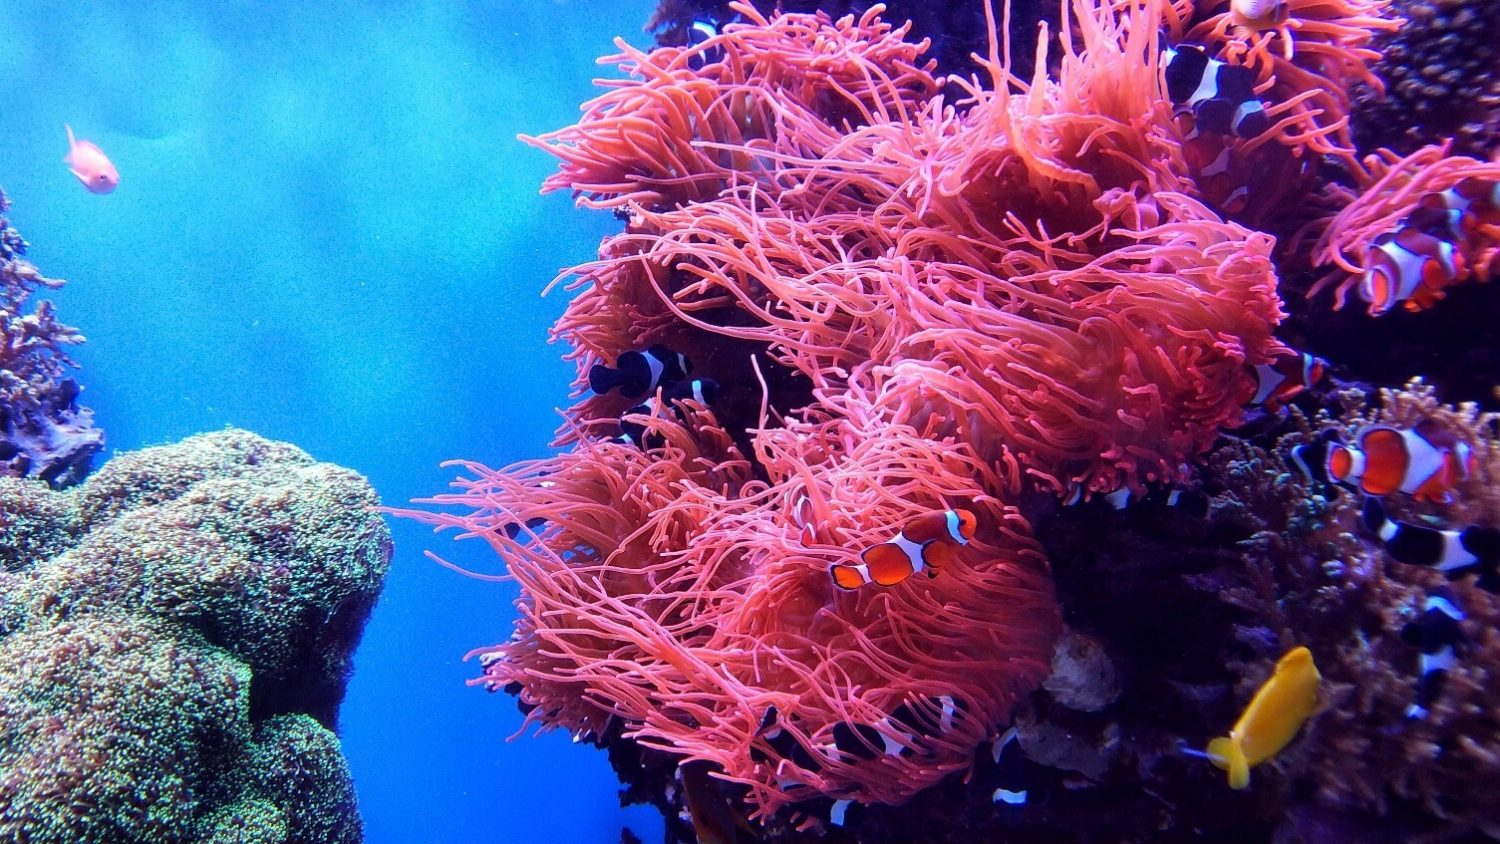 This Australian Tourism Company Is Regrowing the Great Barrier Reef